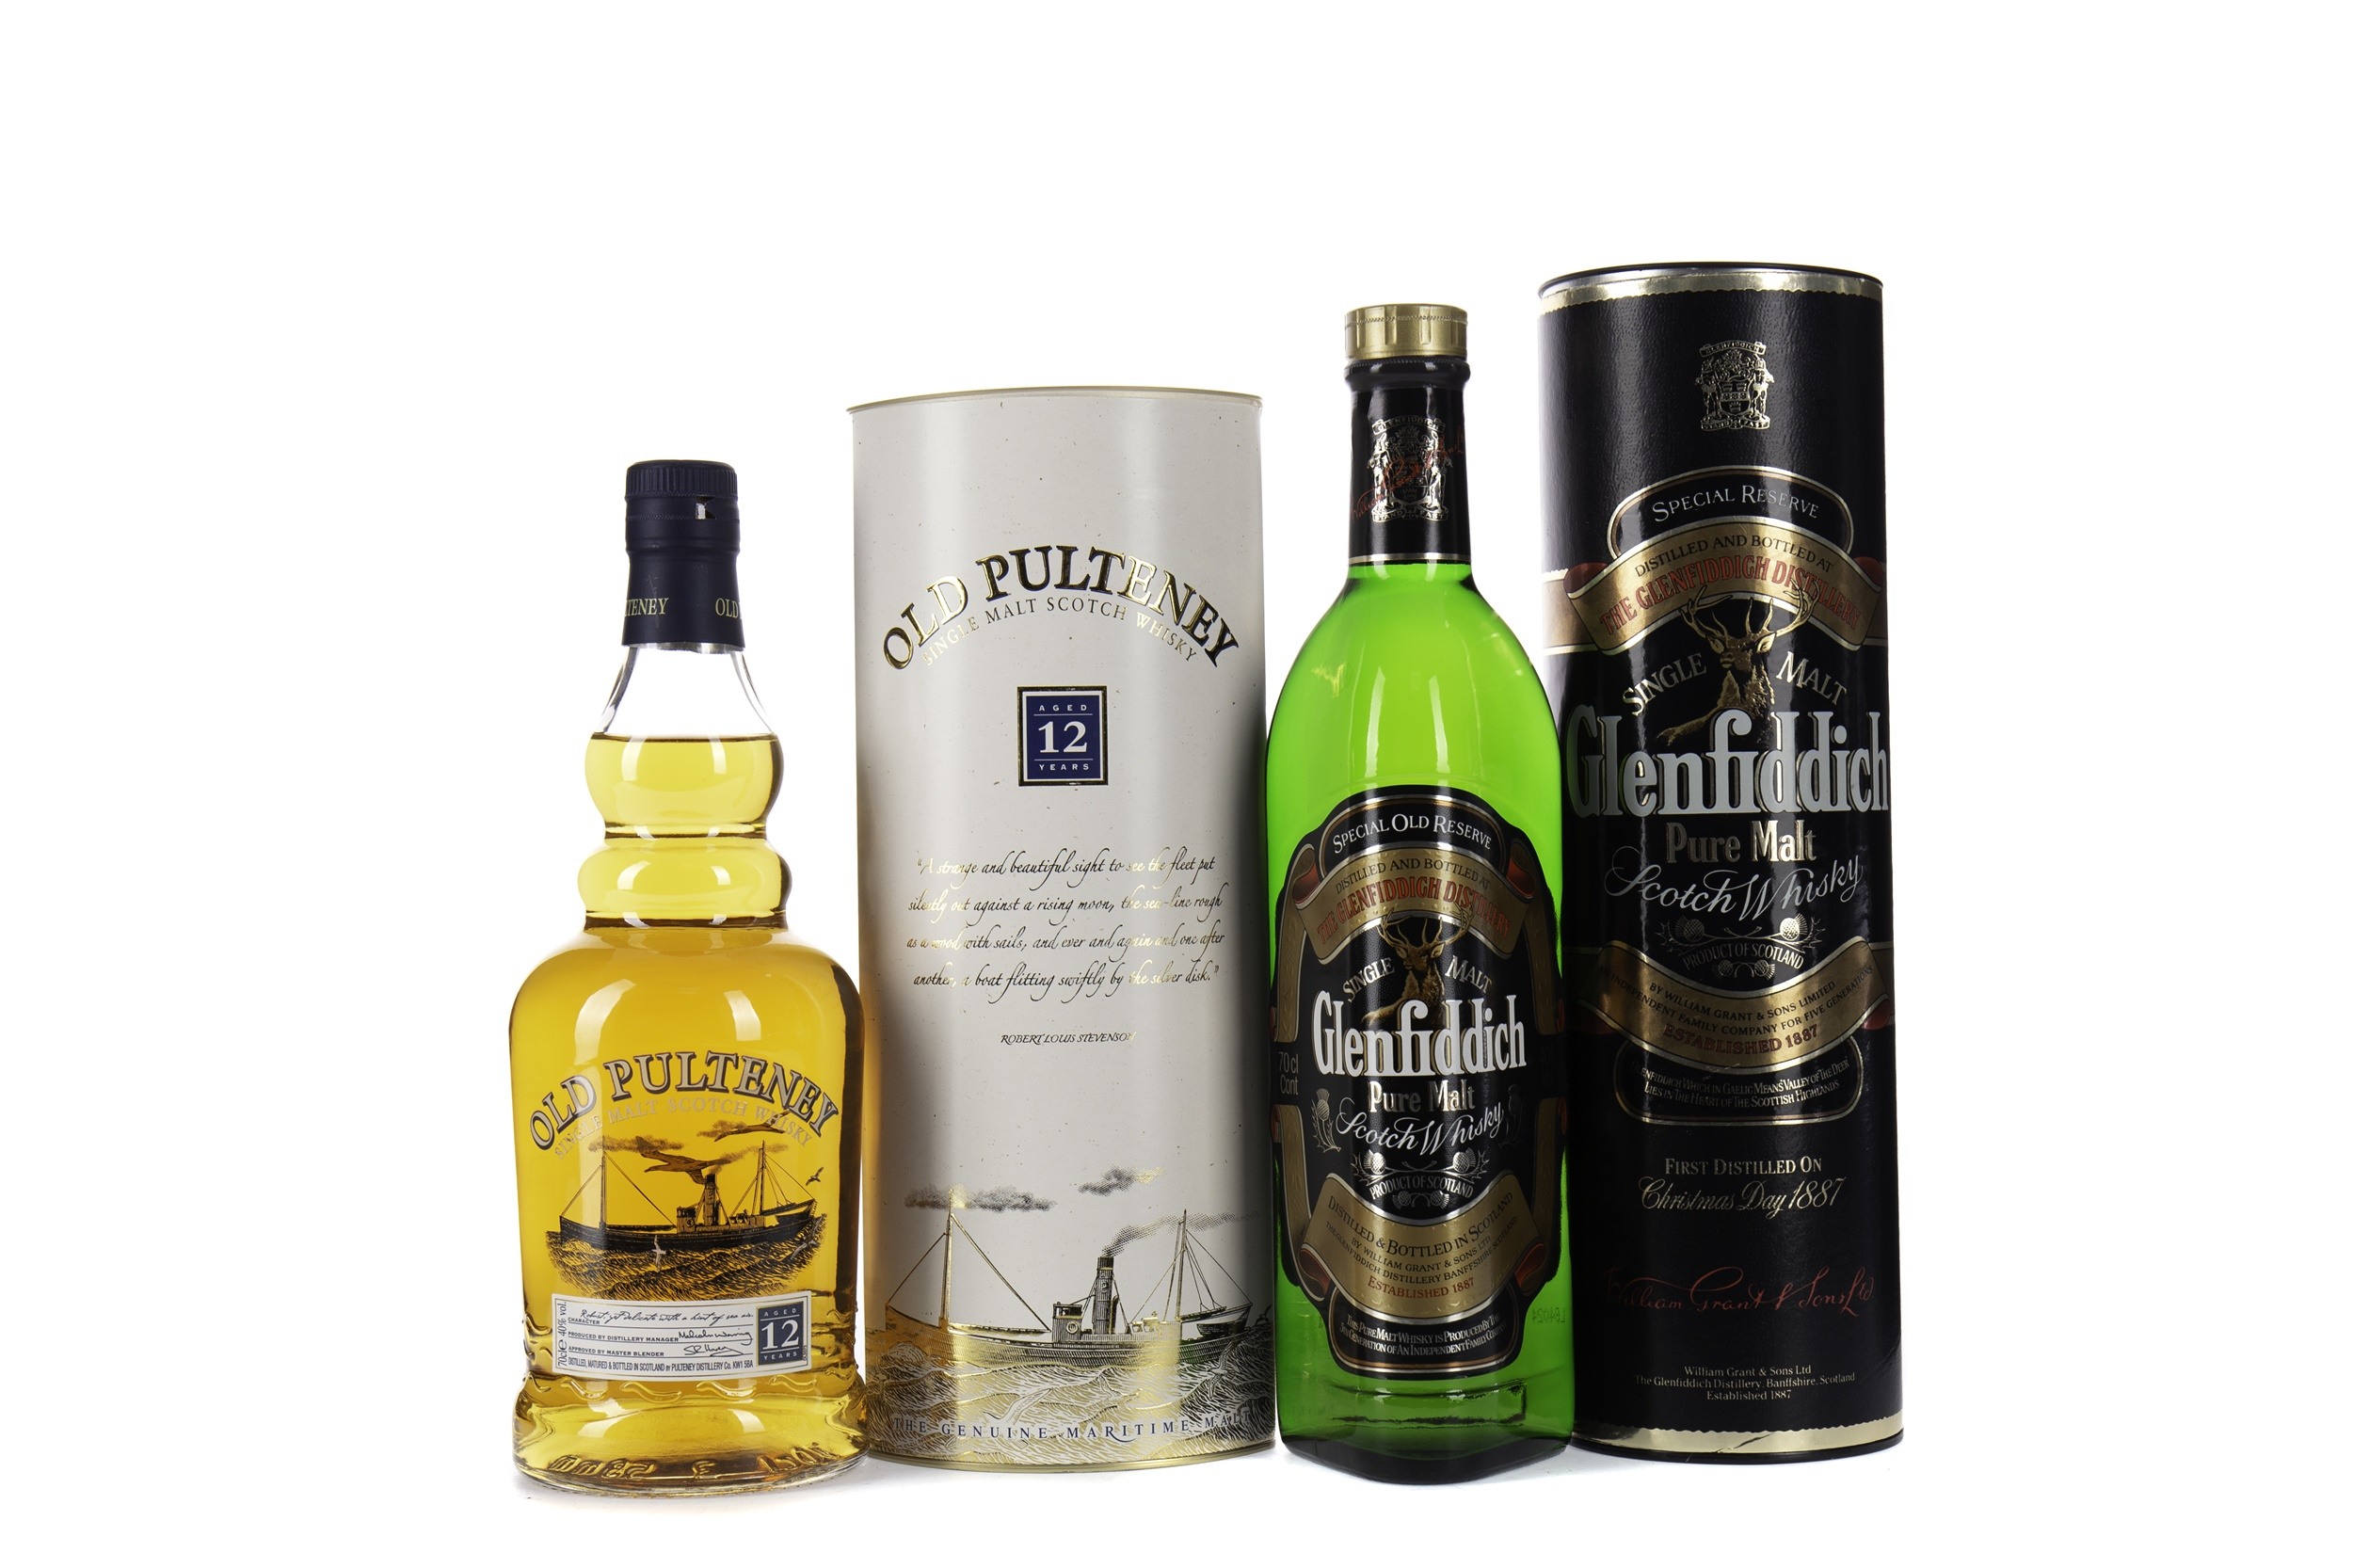 GLENFIDDICH SPECIAL OLD RESERVE AND OLD PULTENEY AGED 12 YEARS